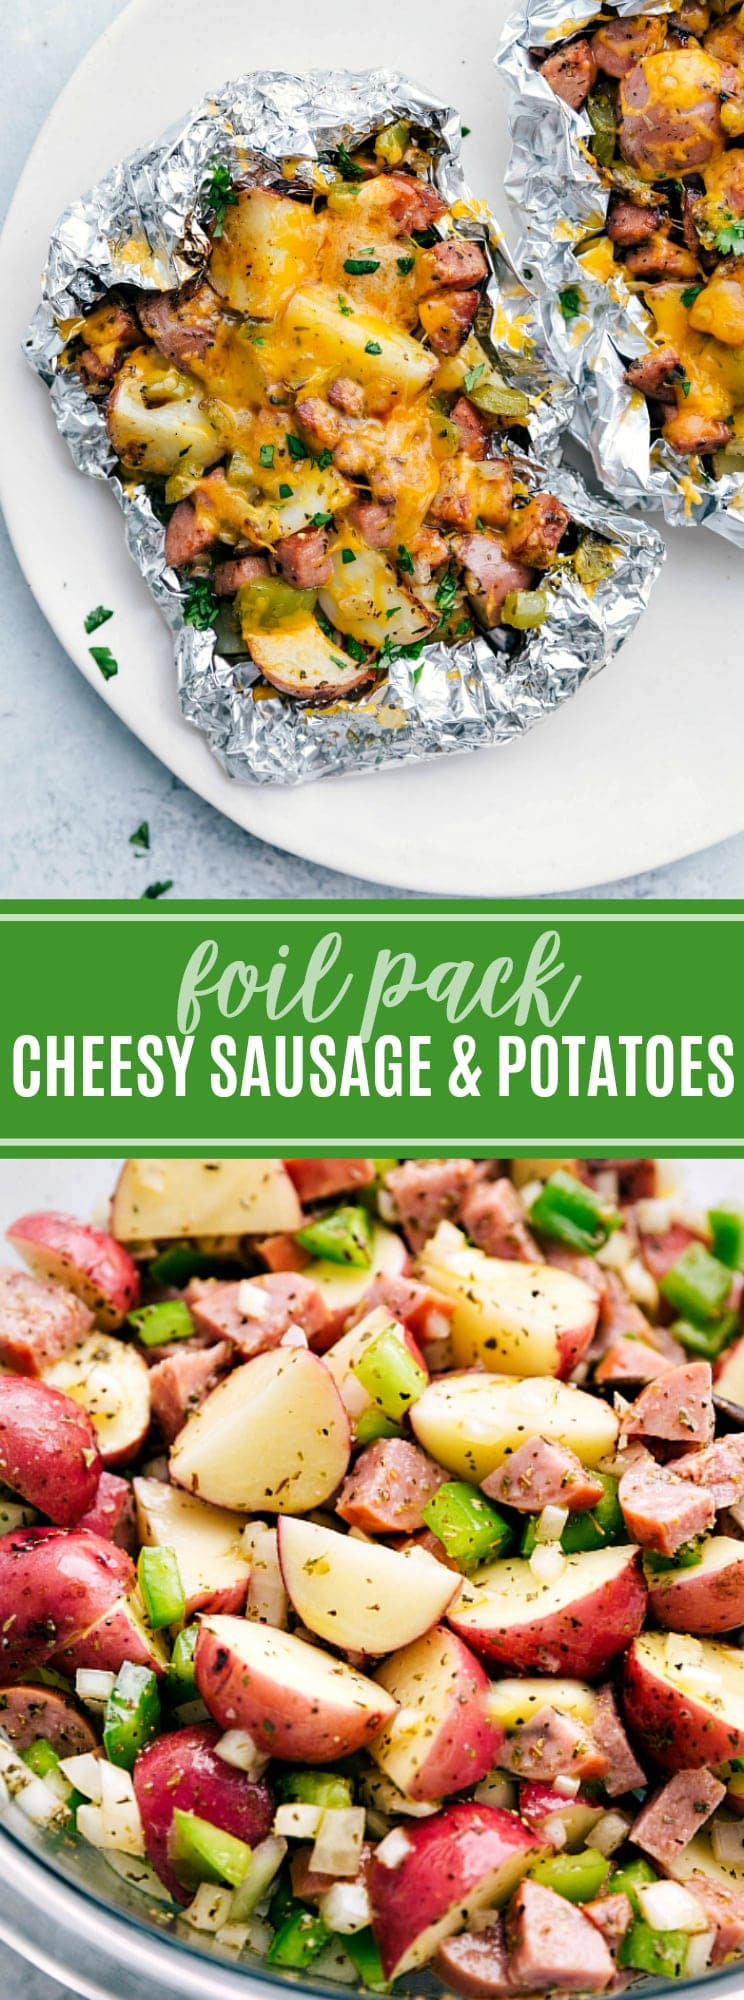 Easy and delicious veggie-packed tin foil packets! Perfect for the campfire, grill, or oven! via chelseasmessyapron.com #foil #pack #tinfoil #tin #cheese #cheesy #breakfast #camping #camp #dinner #easy #quick #foilpack #sausage #potatoes #onion #hotsauce #tabasco #simple #kidfriendly #pepper #onion